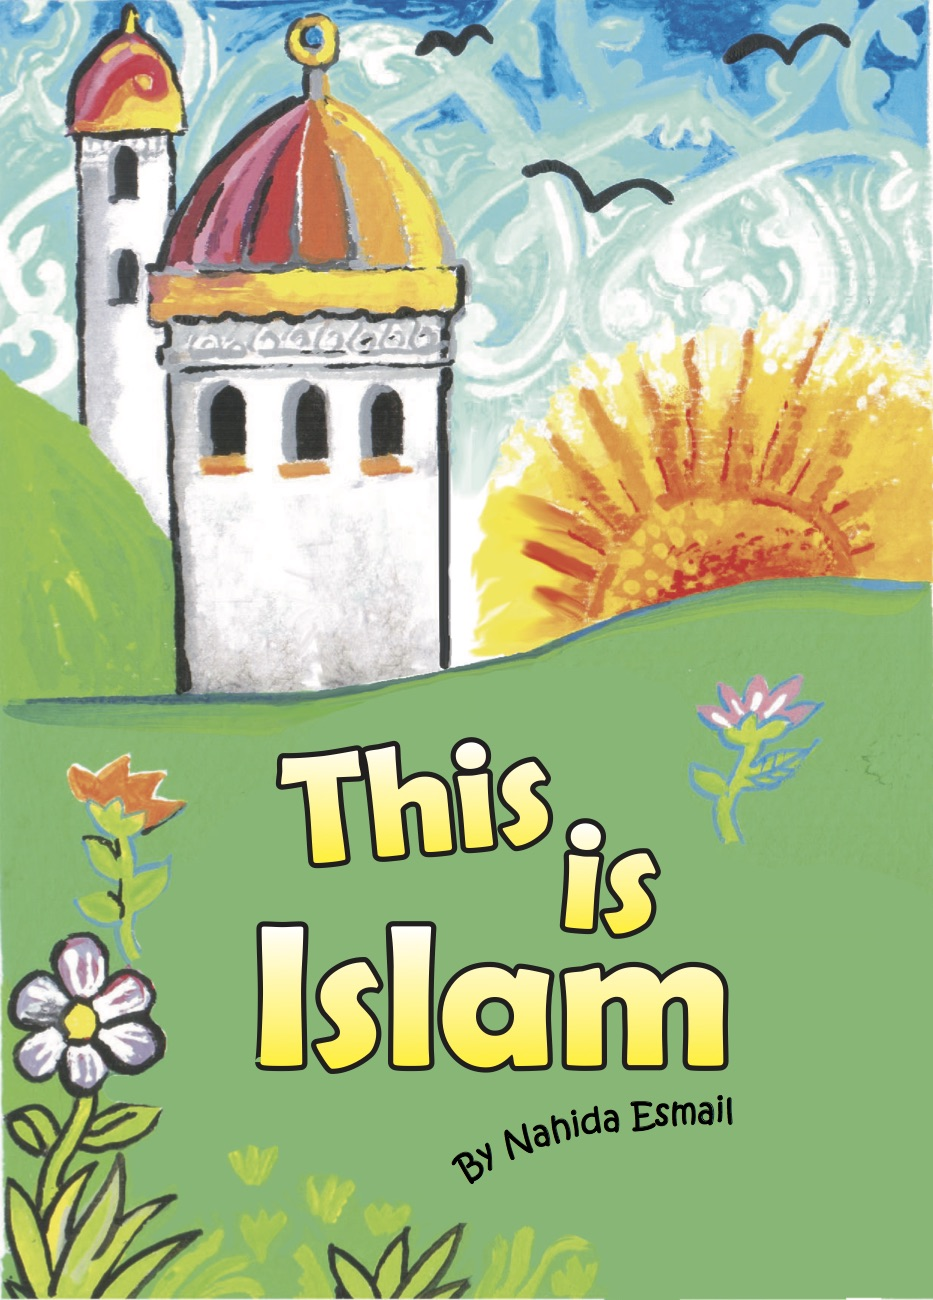 - This is Islam is an easy to understand book for children who have questions about the Islamic faith. It explains the fundamental tenets of Islam, and draws on similarities between Christianity and Islam. Children may be amazed to learn that there are many common grounds between these two religions.